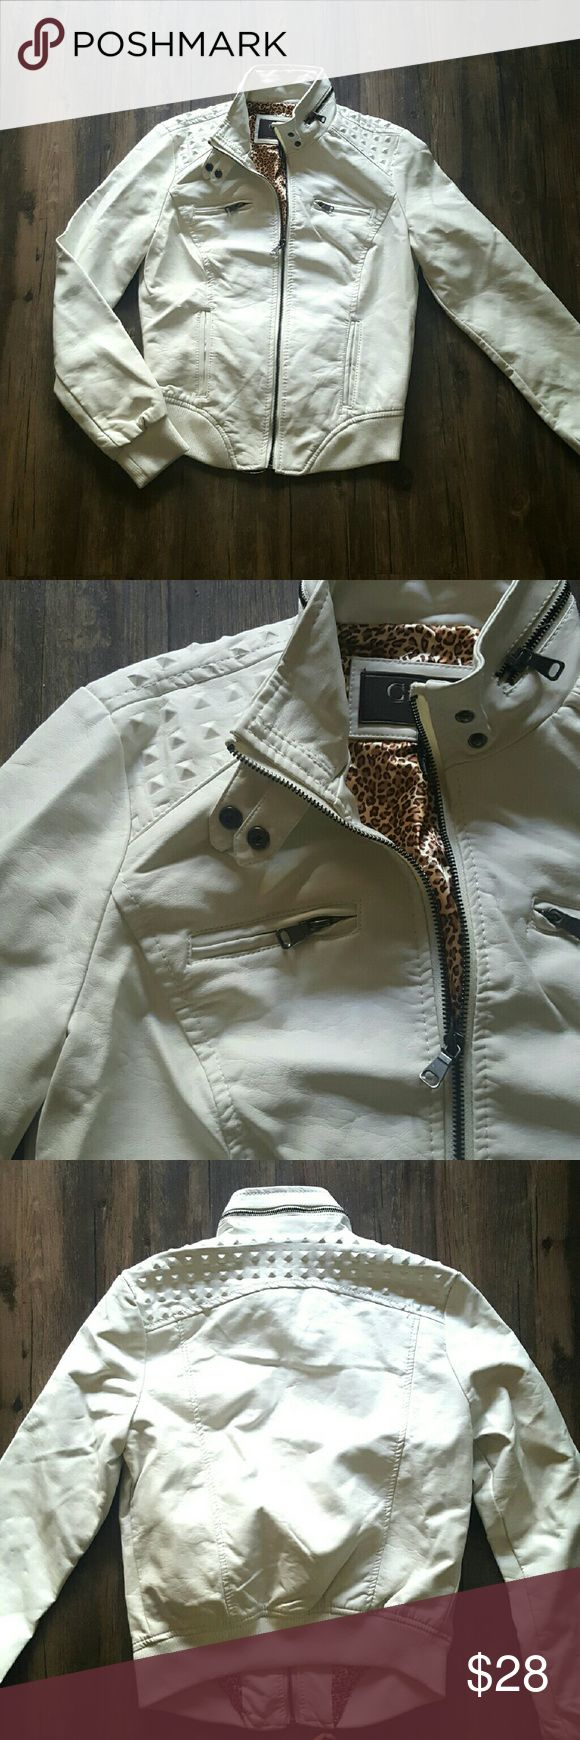 Vegan White Leather Jacket New Vegan Leather Jacket Off White Detailed on shoulders 4 pockets fully lined  New with tags Jackets & Coats